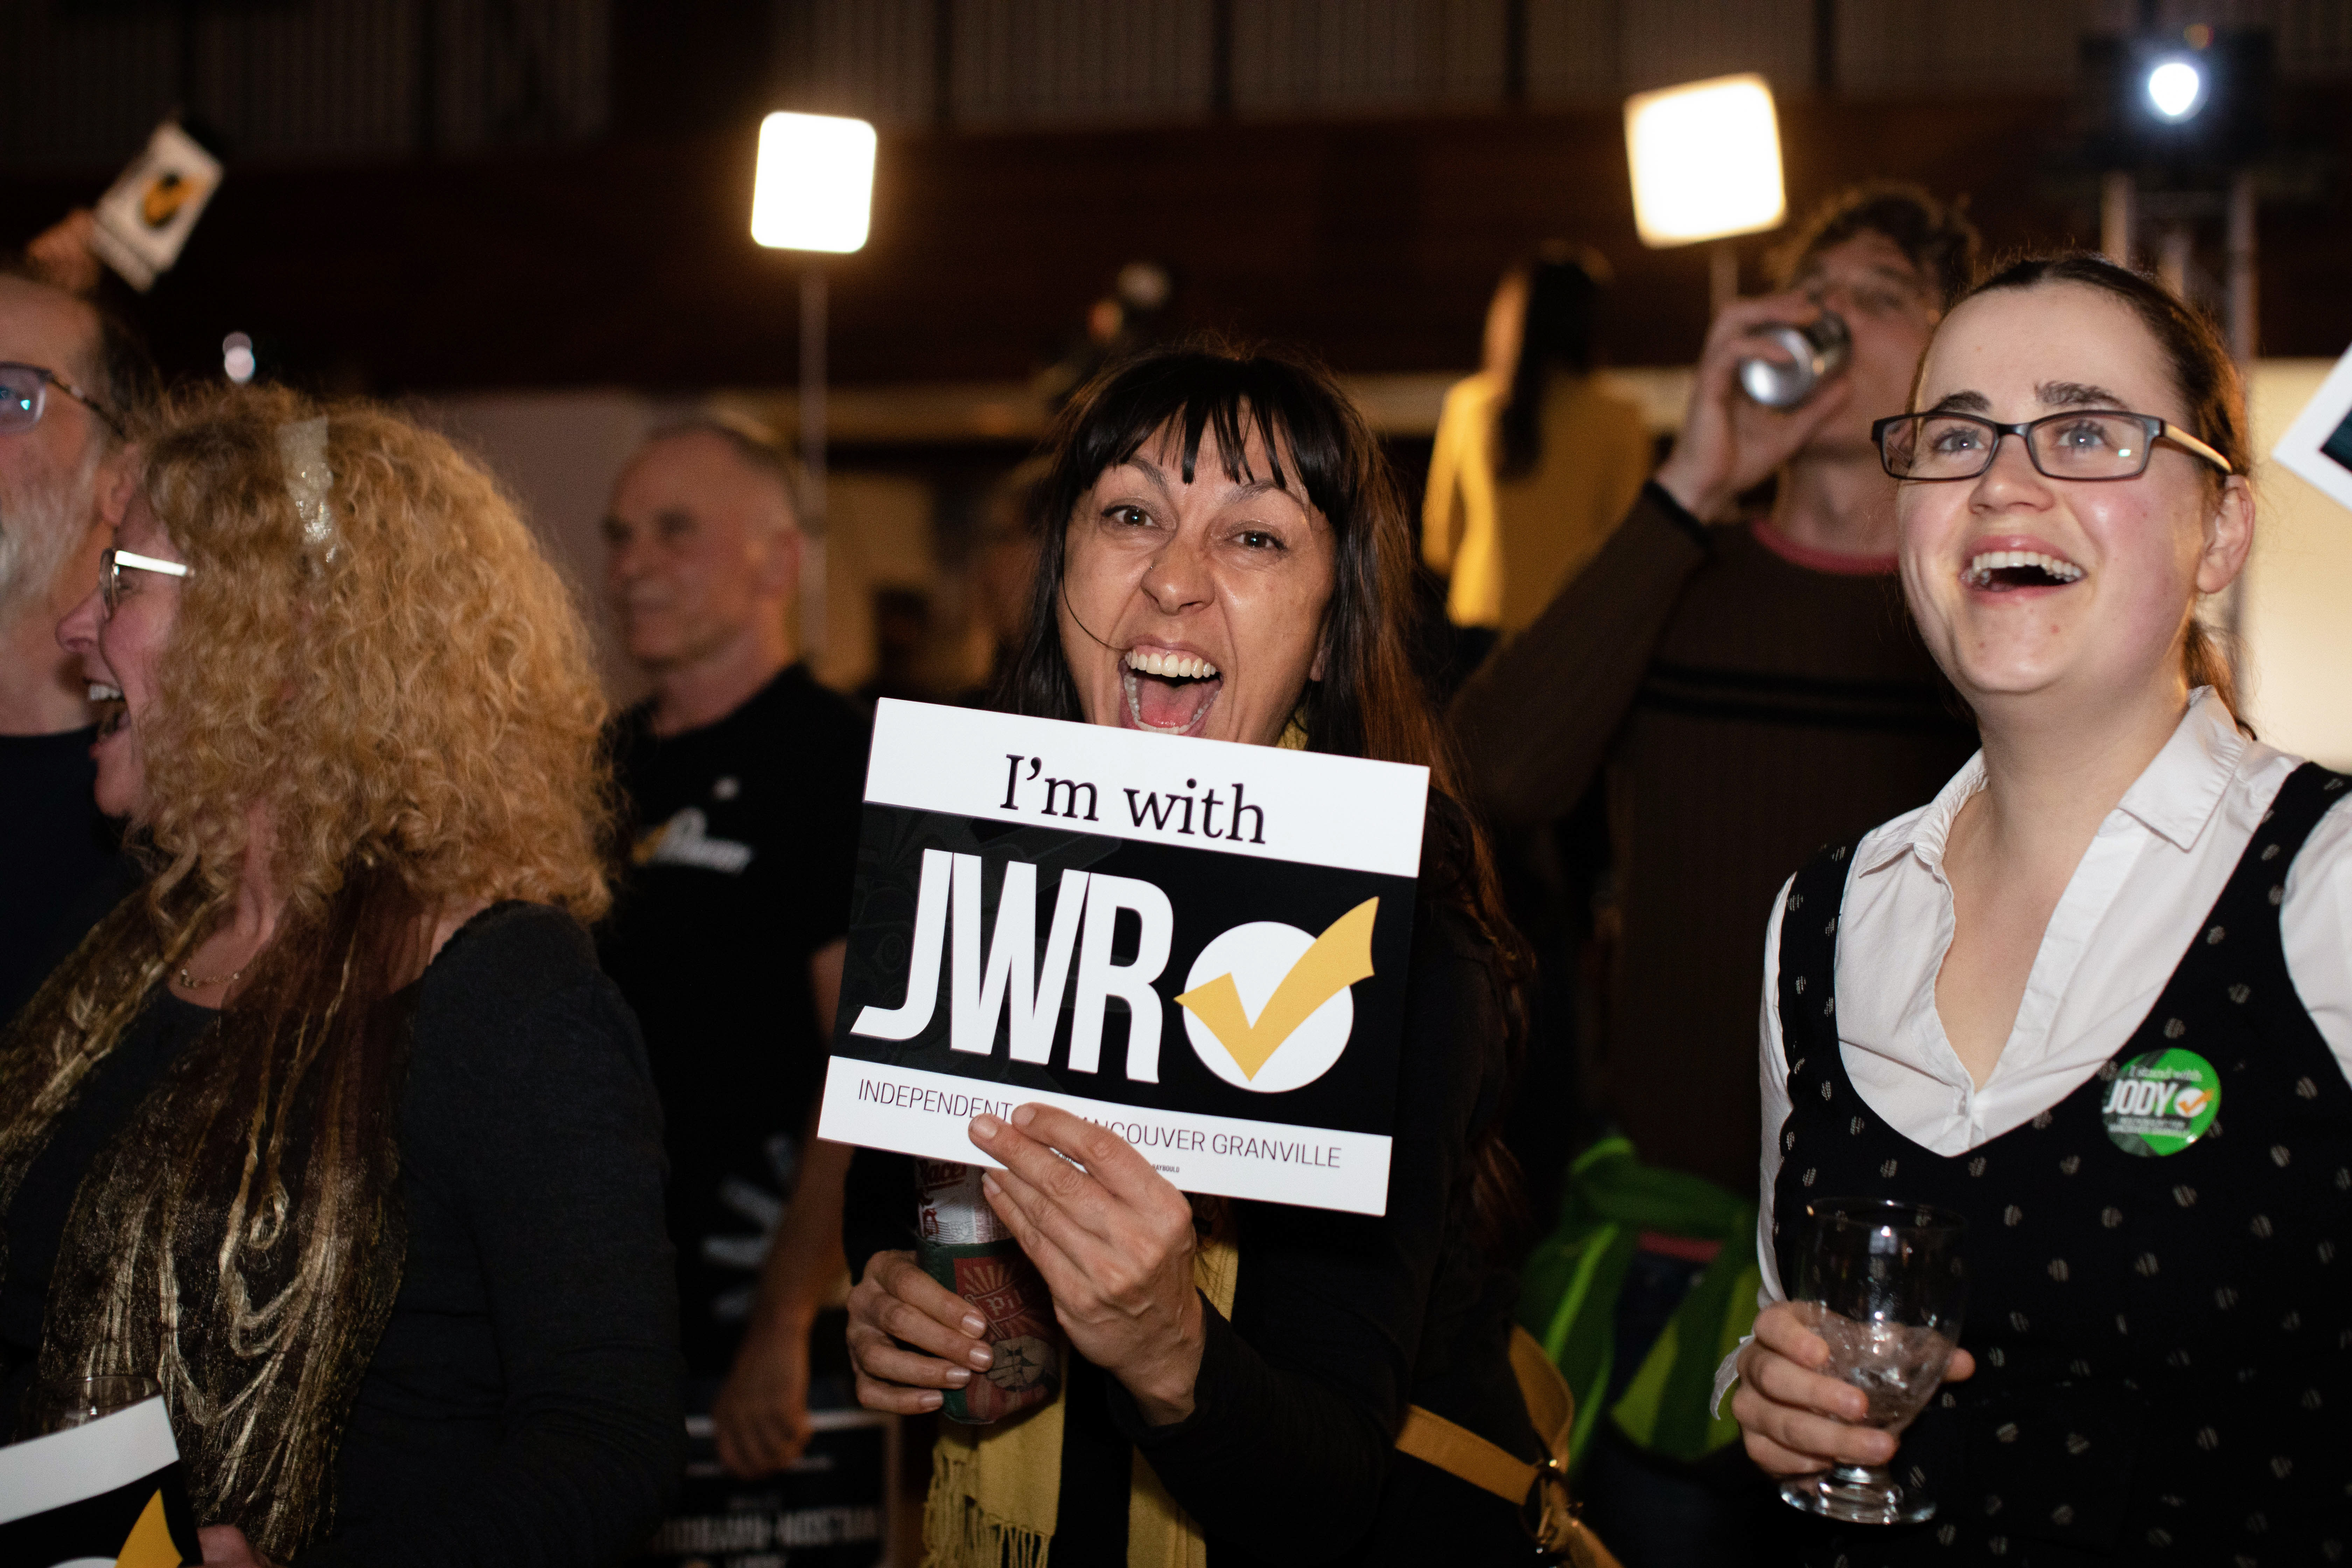 Supporters of independent MP Jody Wilson-Raybould gather on election night, Oct. 21, 2019, in Vancouver. (Maggie MacPherson/CBC)